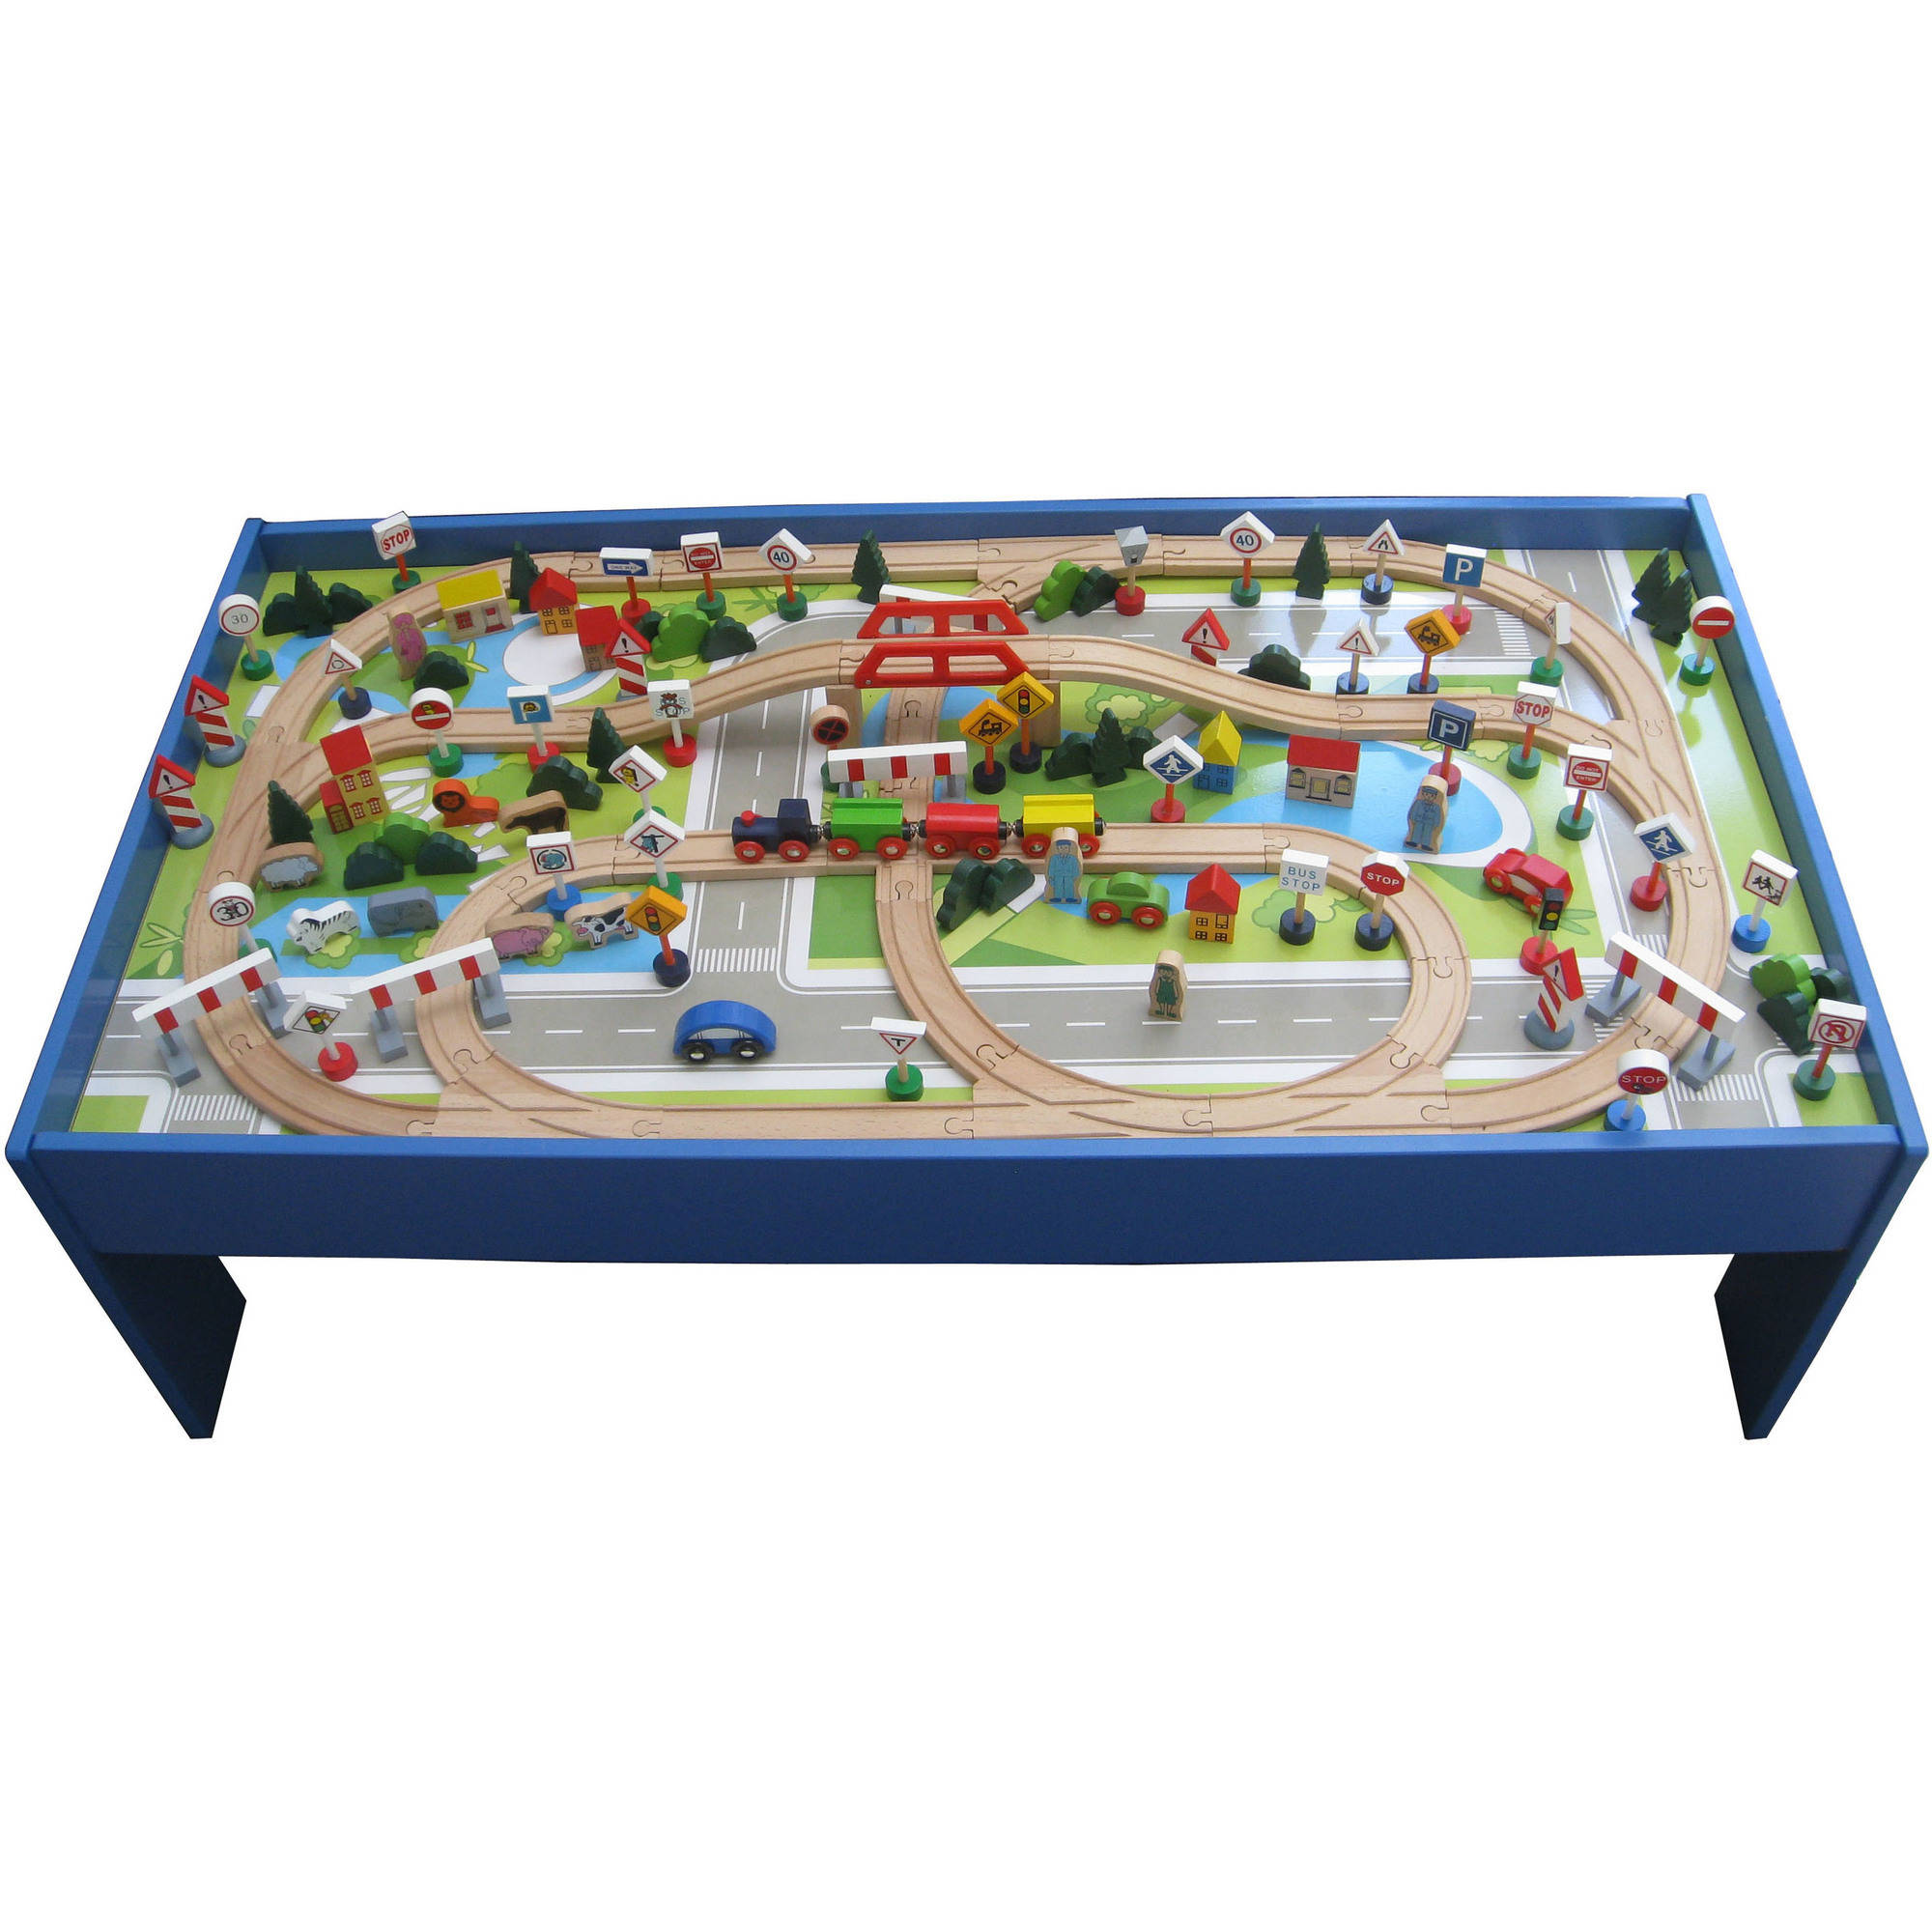 150-Piece Wooden Train Set with Table